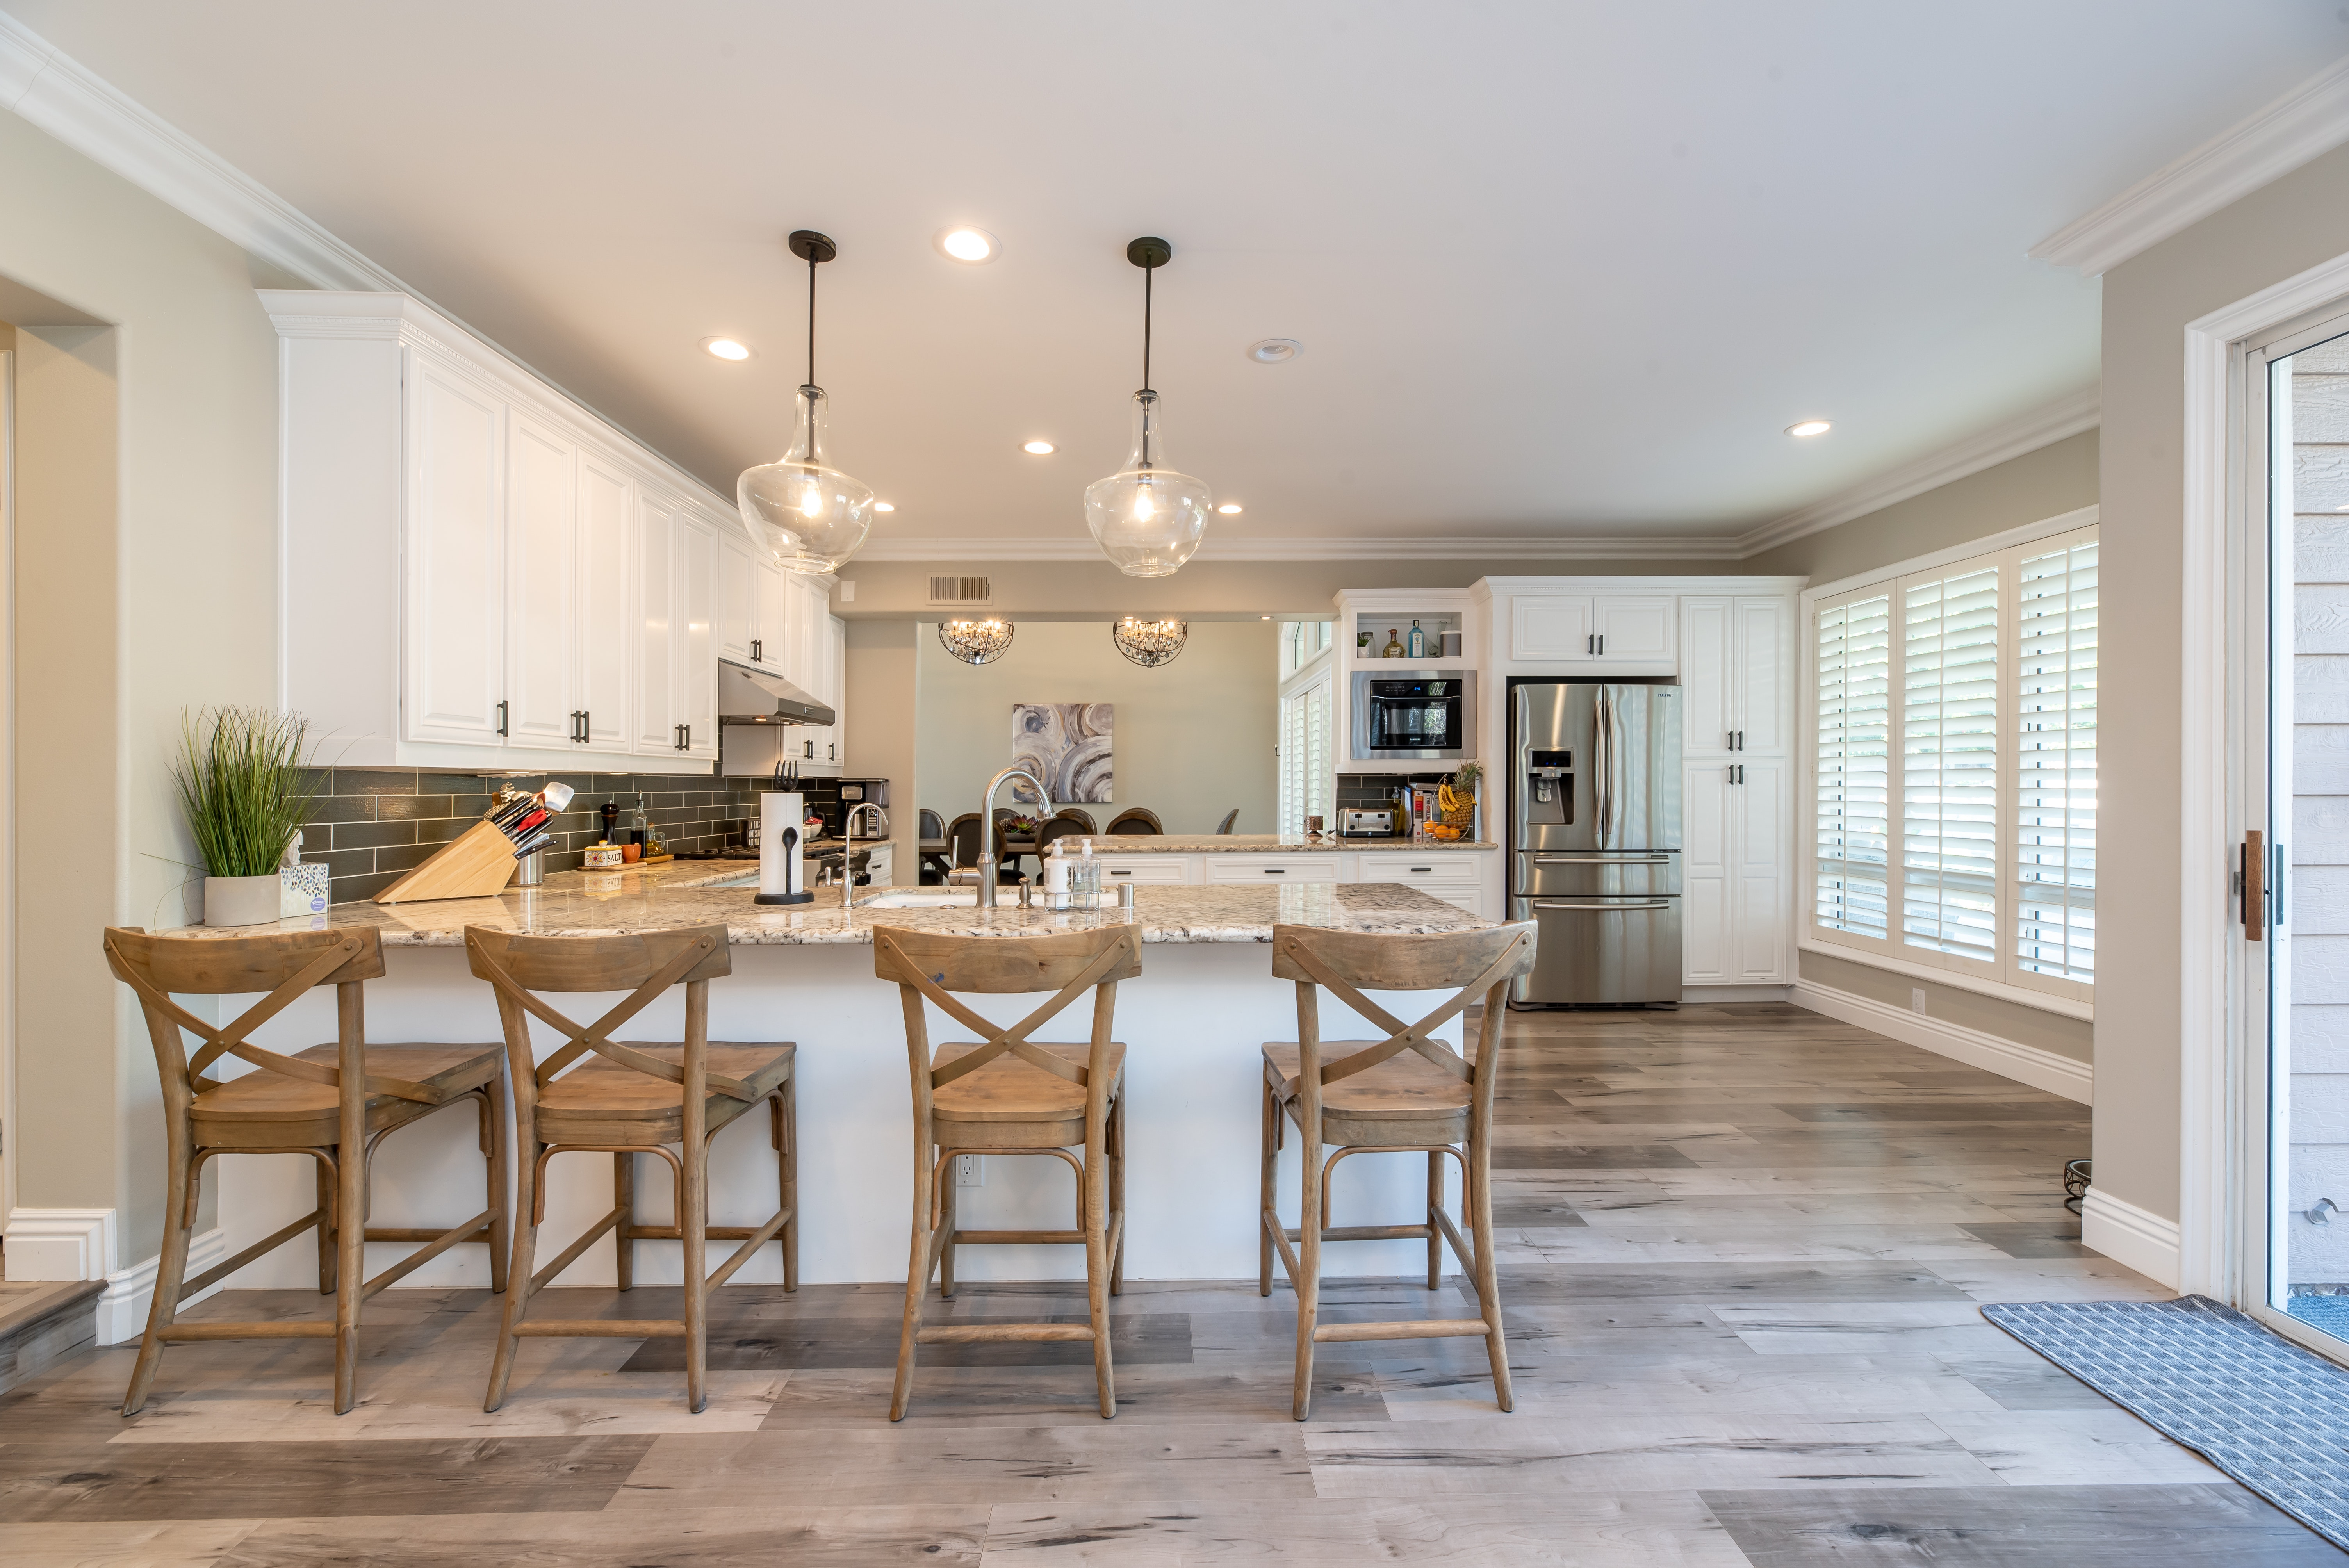 spacious kitchen with island and 4 stools and wooden floors